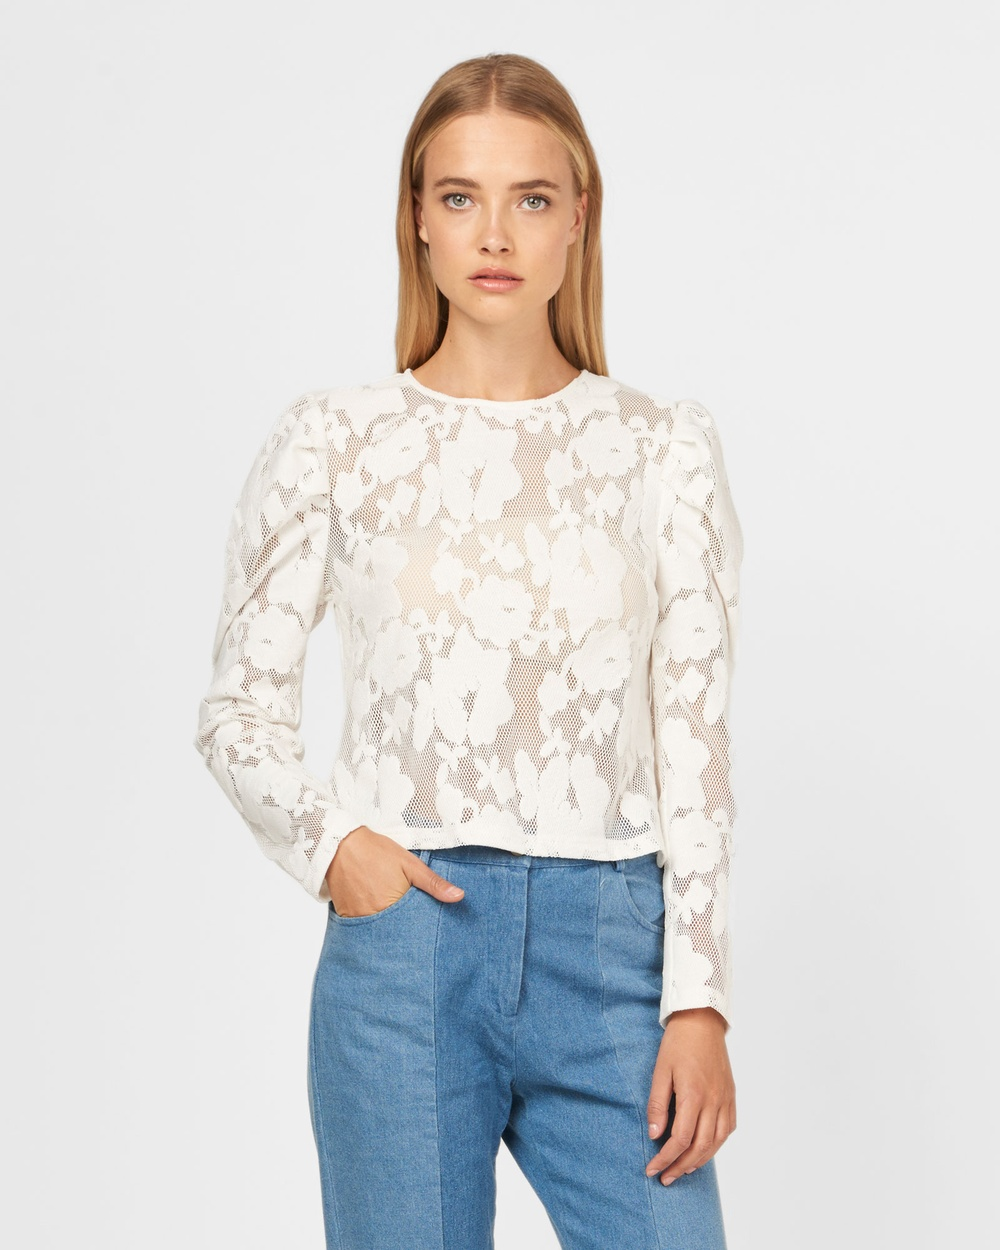 MVN Winter Wonderland Top Tops White Winter Wonderland Top